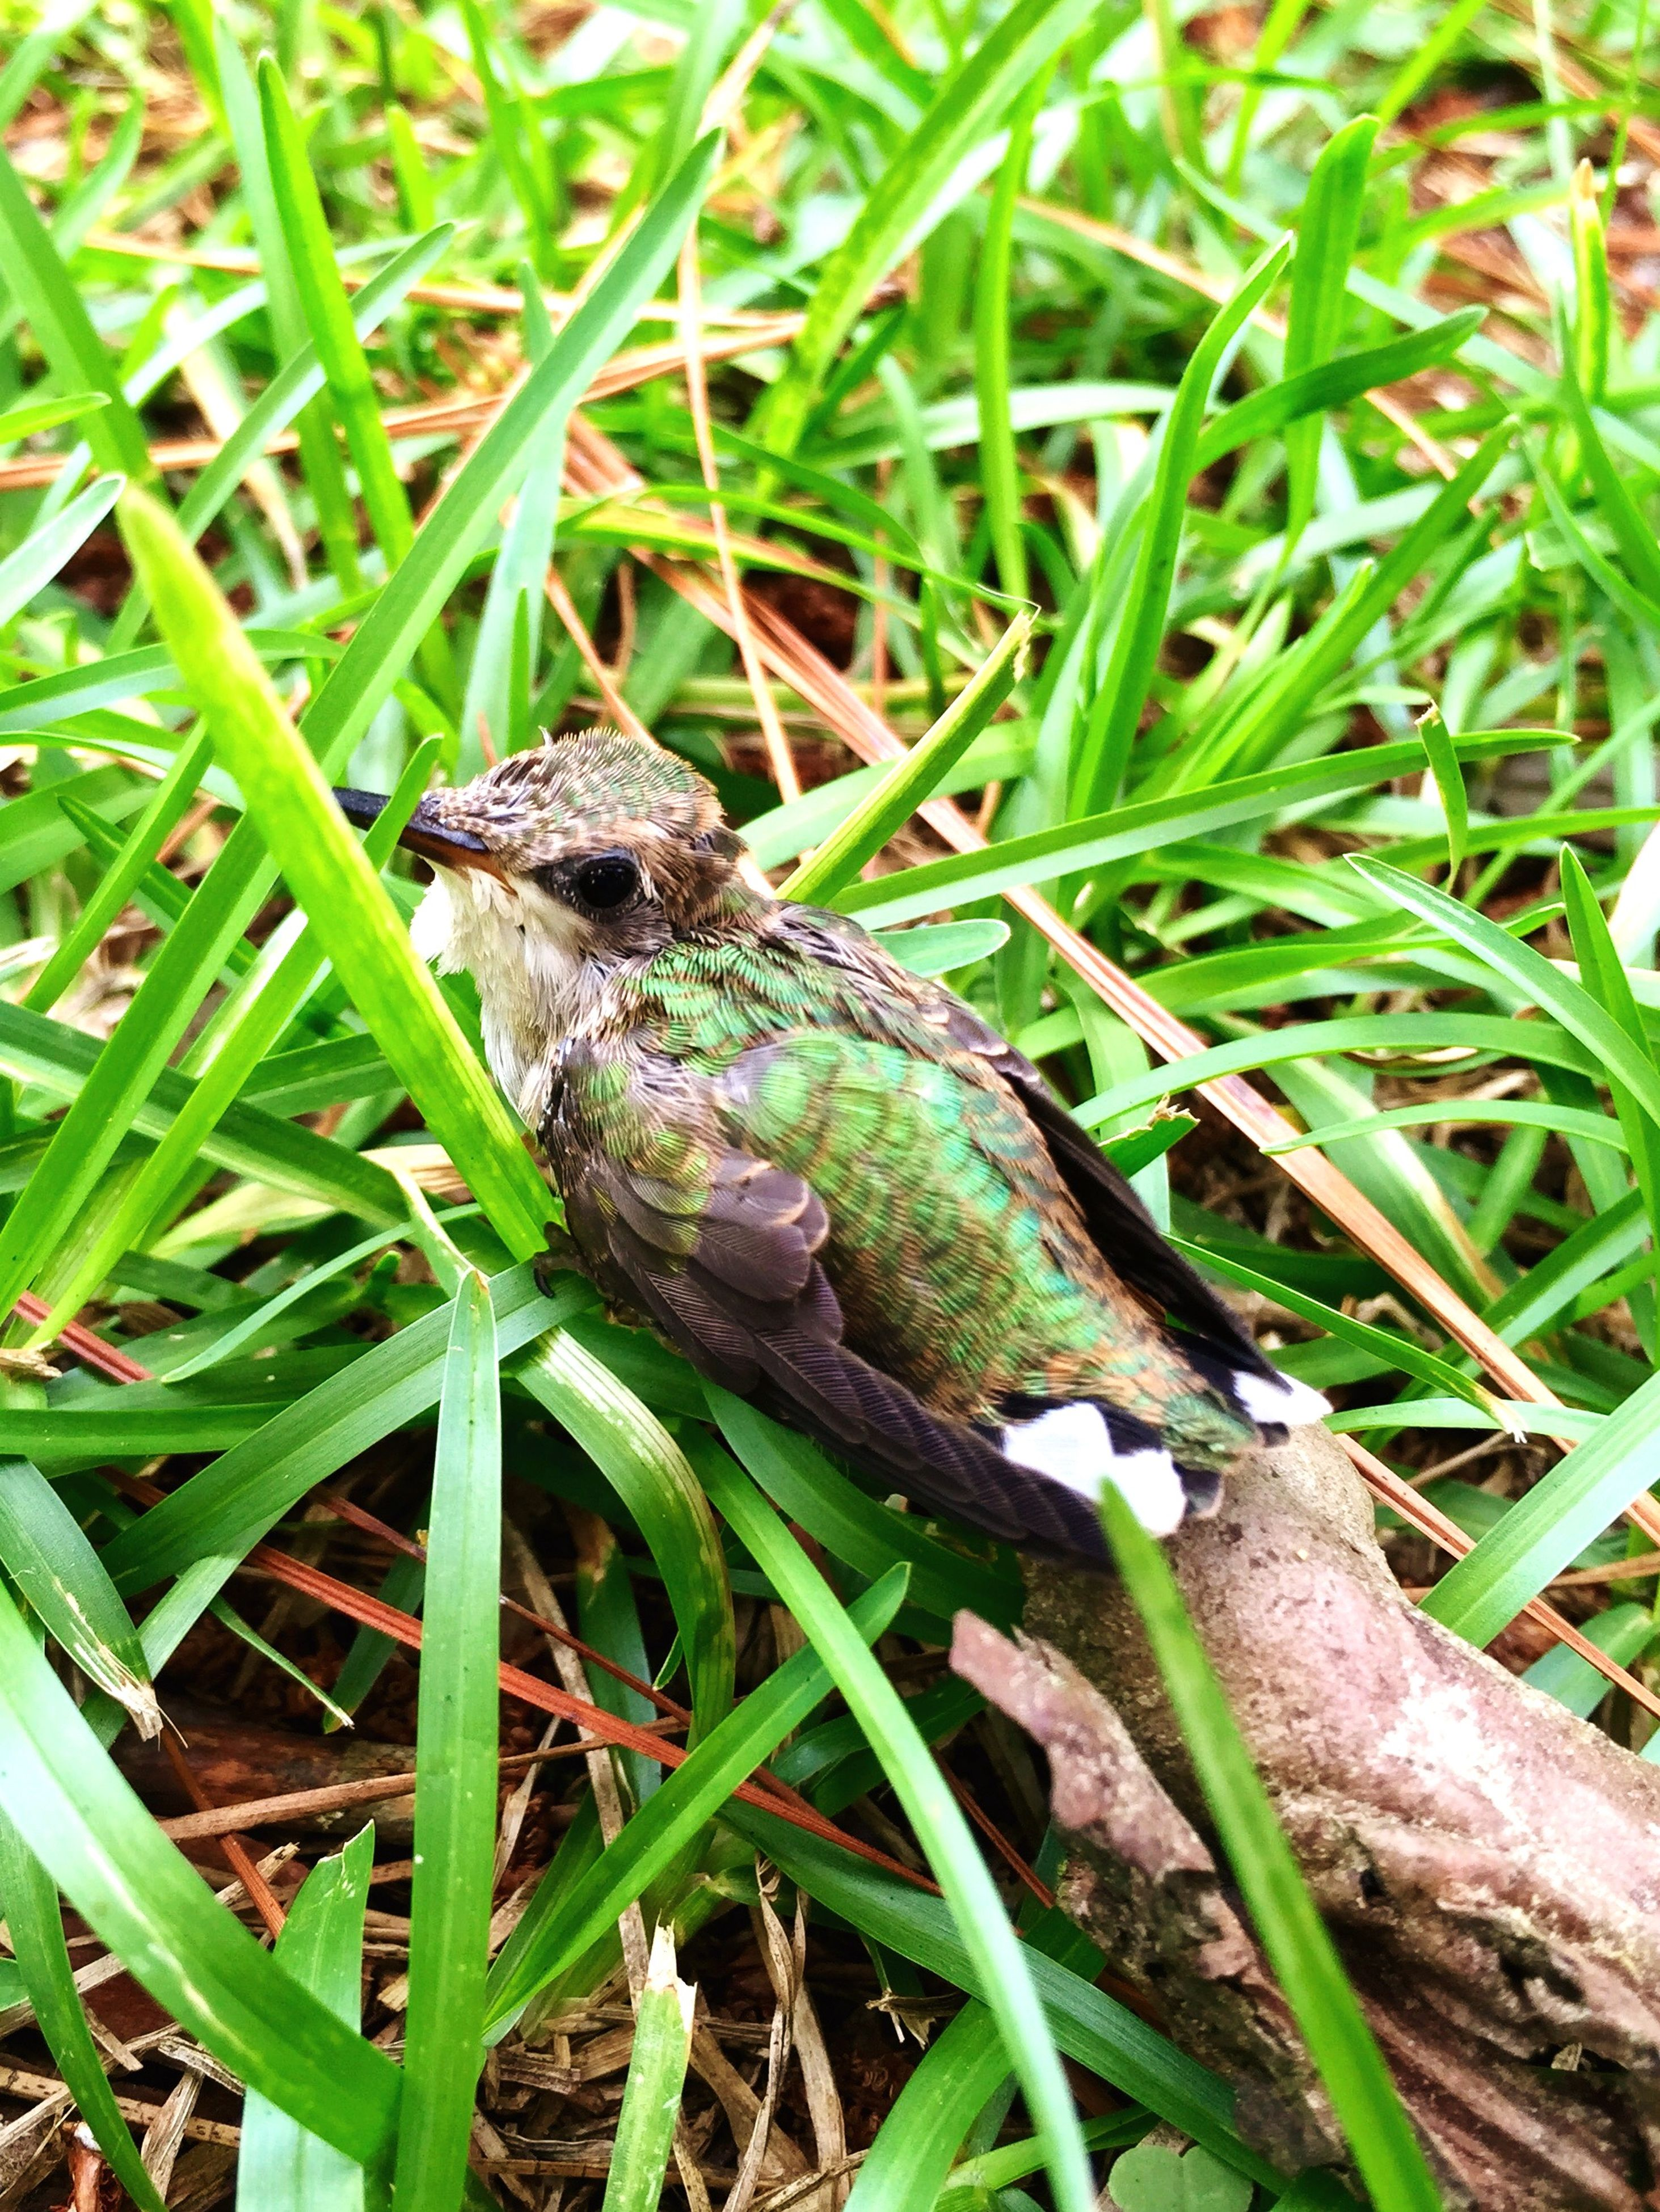 animal themes, animals in the wild, one animal, wildlife, reptile, grass, green color, lizard, frog, nature, field, amphibian, plant, close-up, full length, high angle view, side view, outdoors, day, grassy